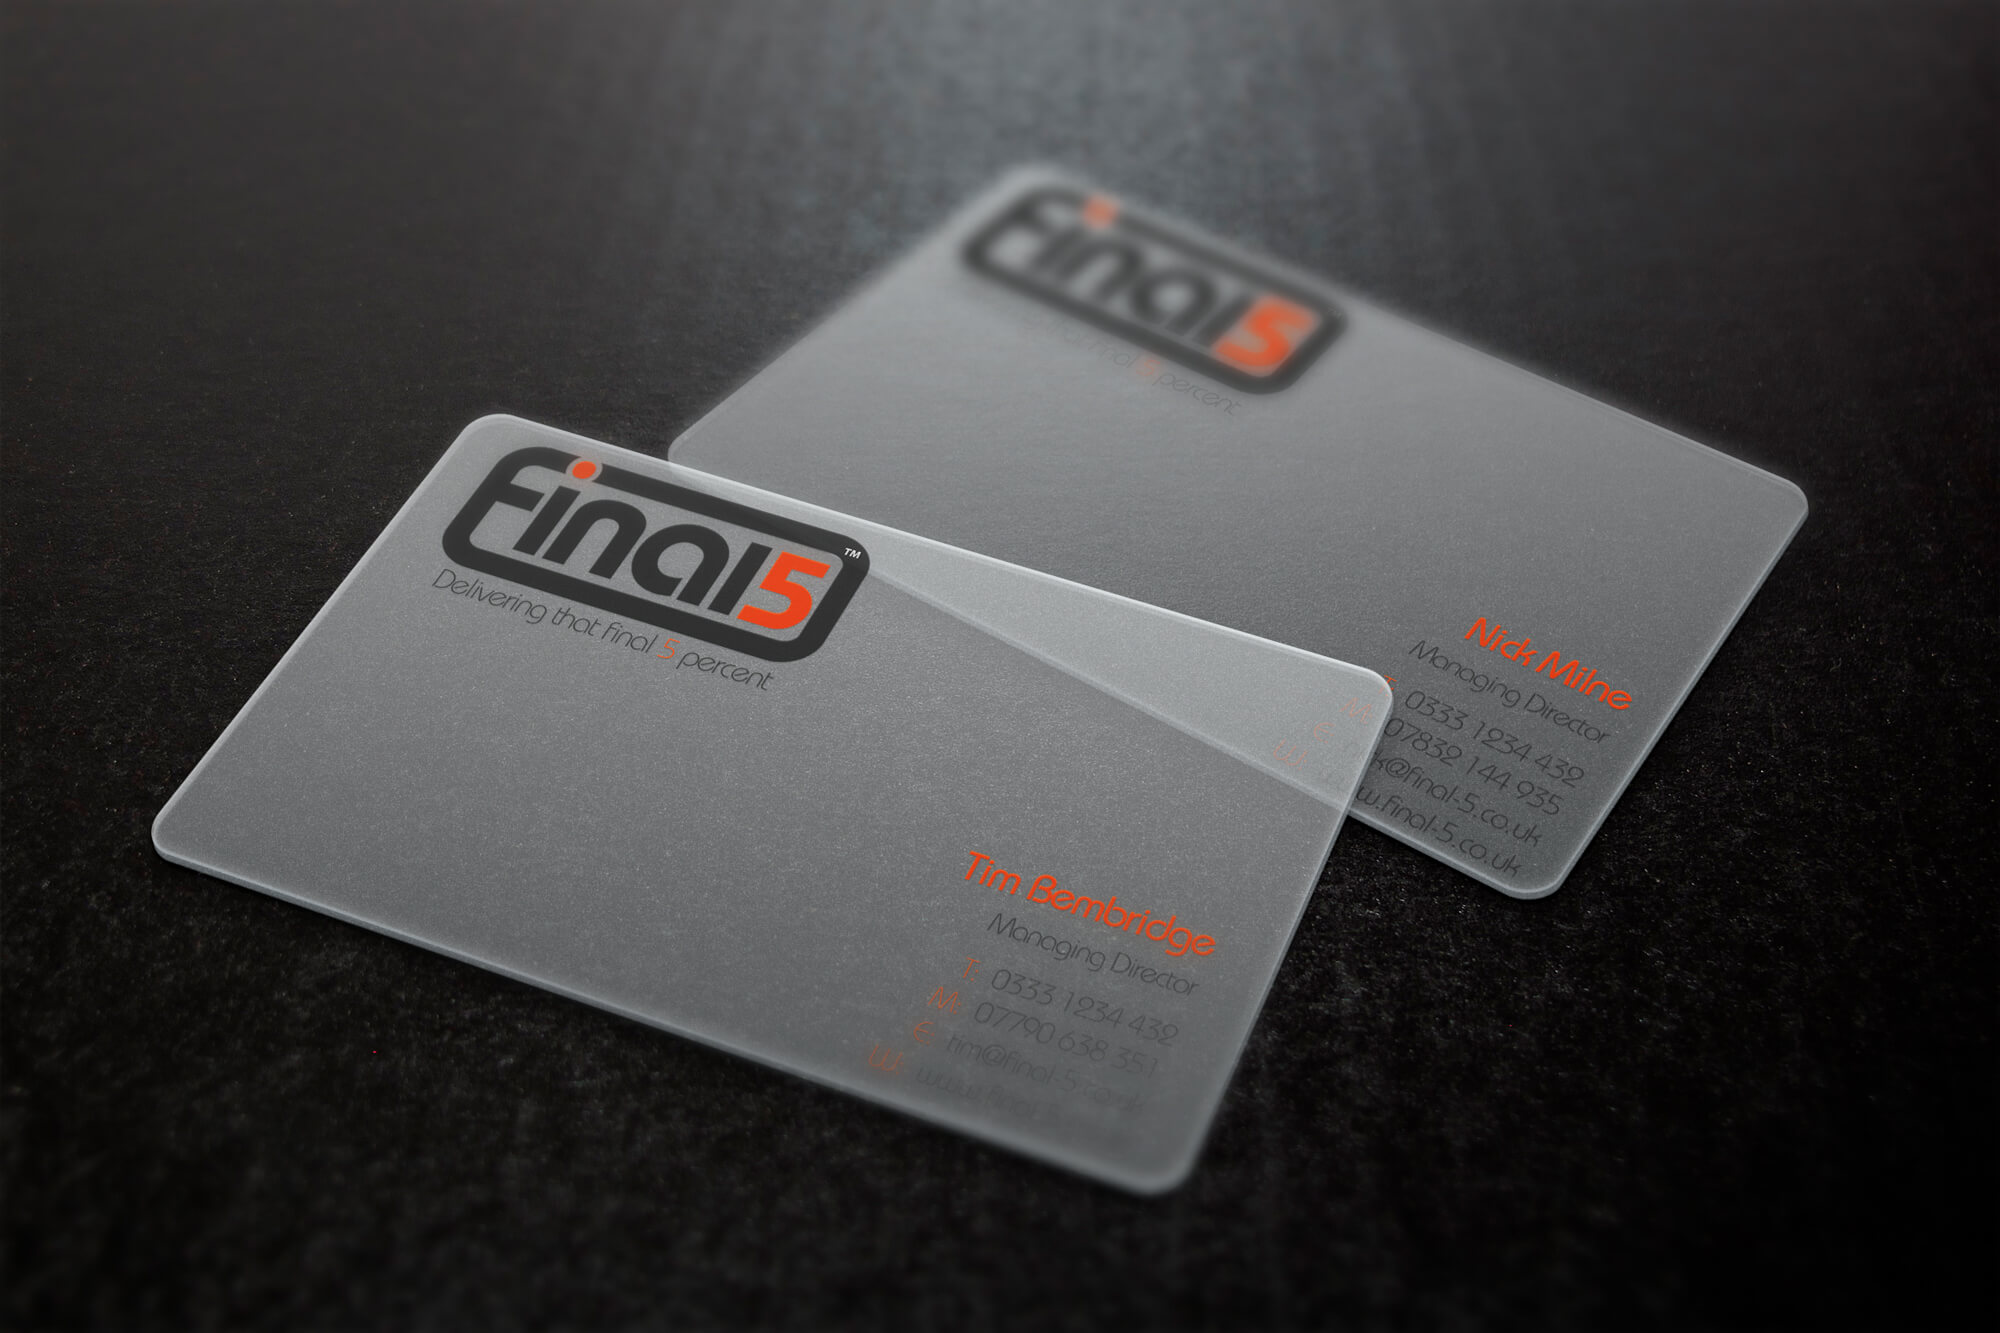 Final 5 Business card design